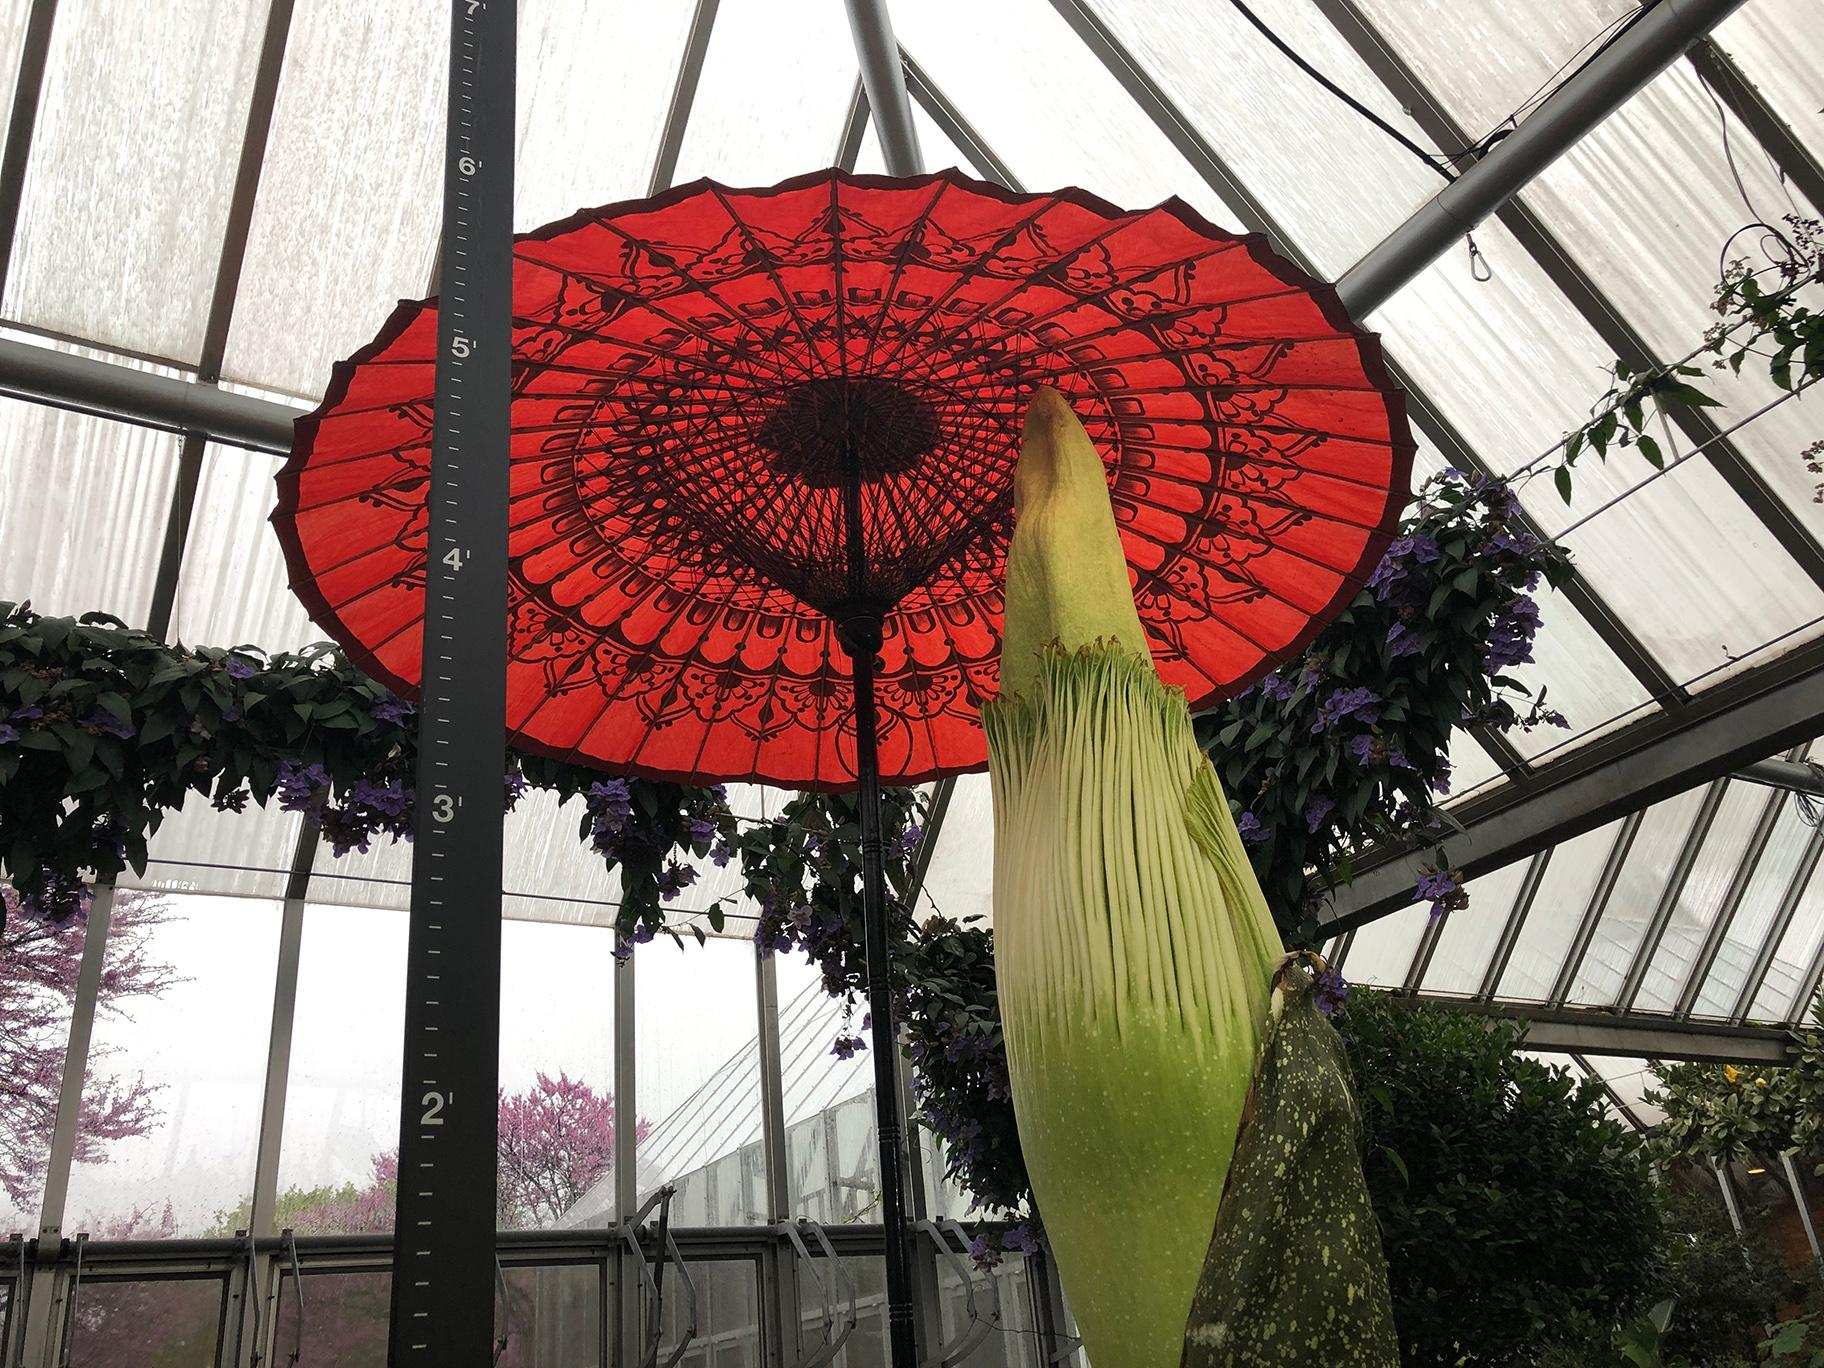 Java the corpse flower is on bloom watch at the Chicago Botanic Garden. (Alex Ruppenthal / WTTW News)